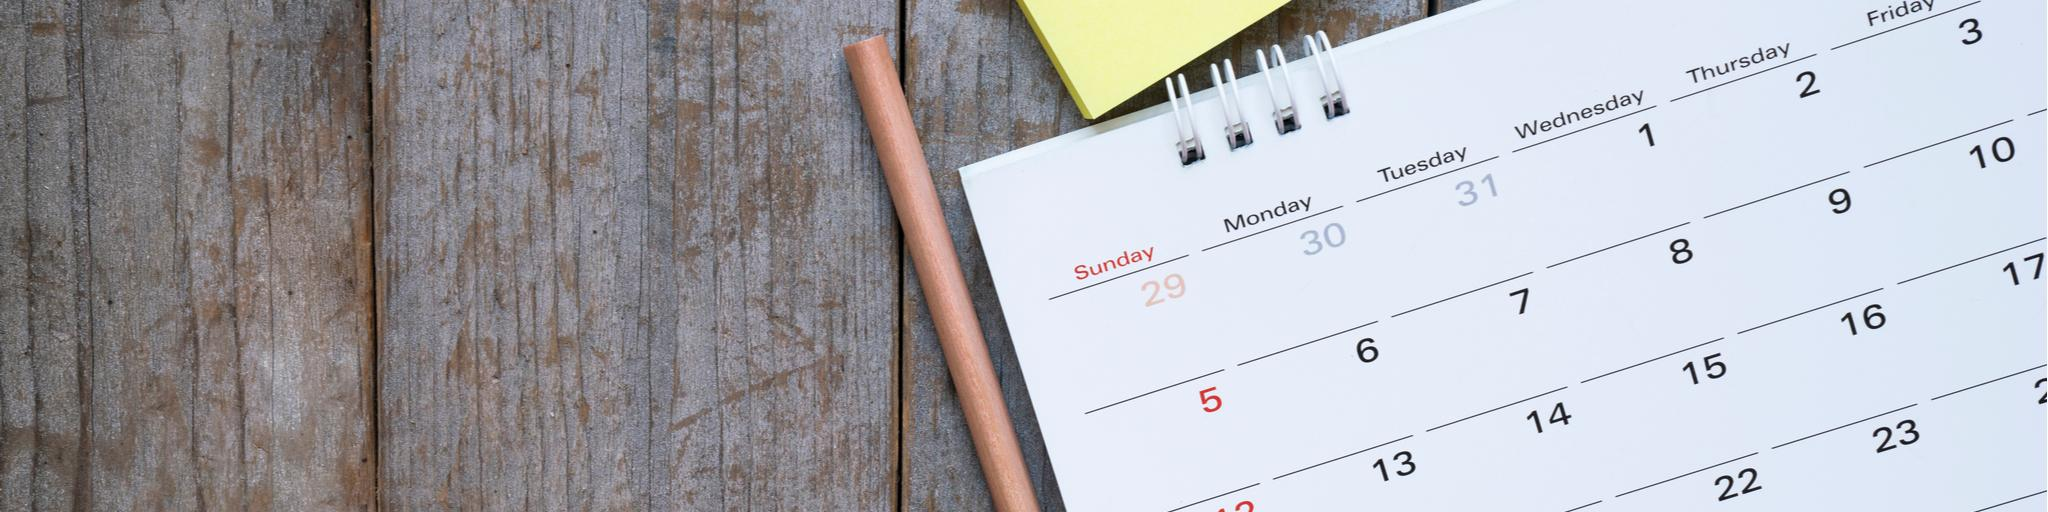 Close up of calendar on the table with pencil and sticky notes